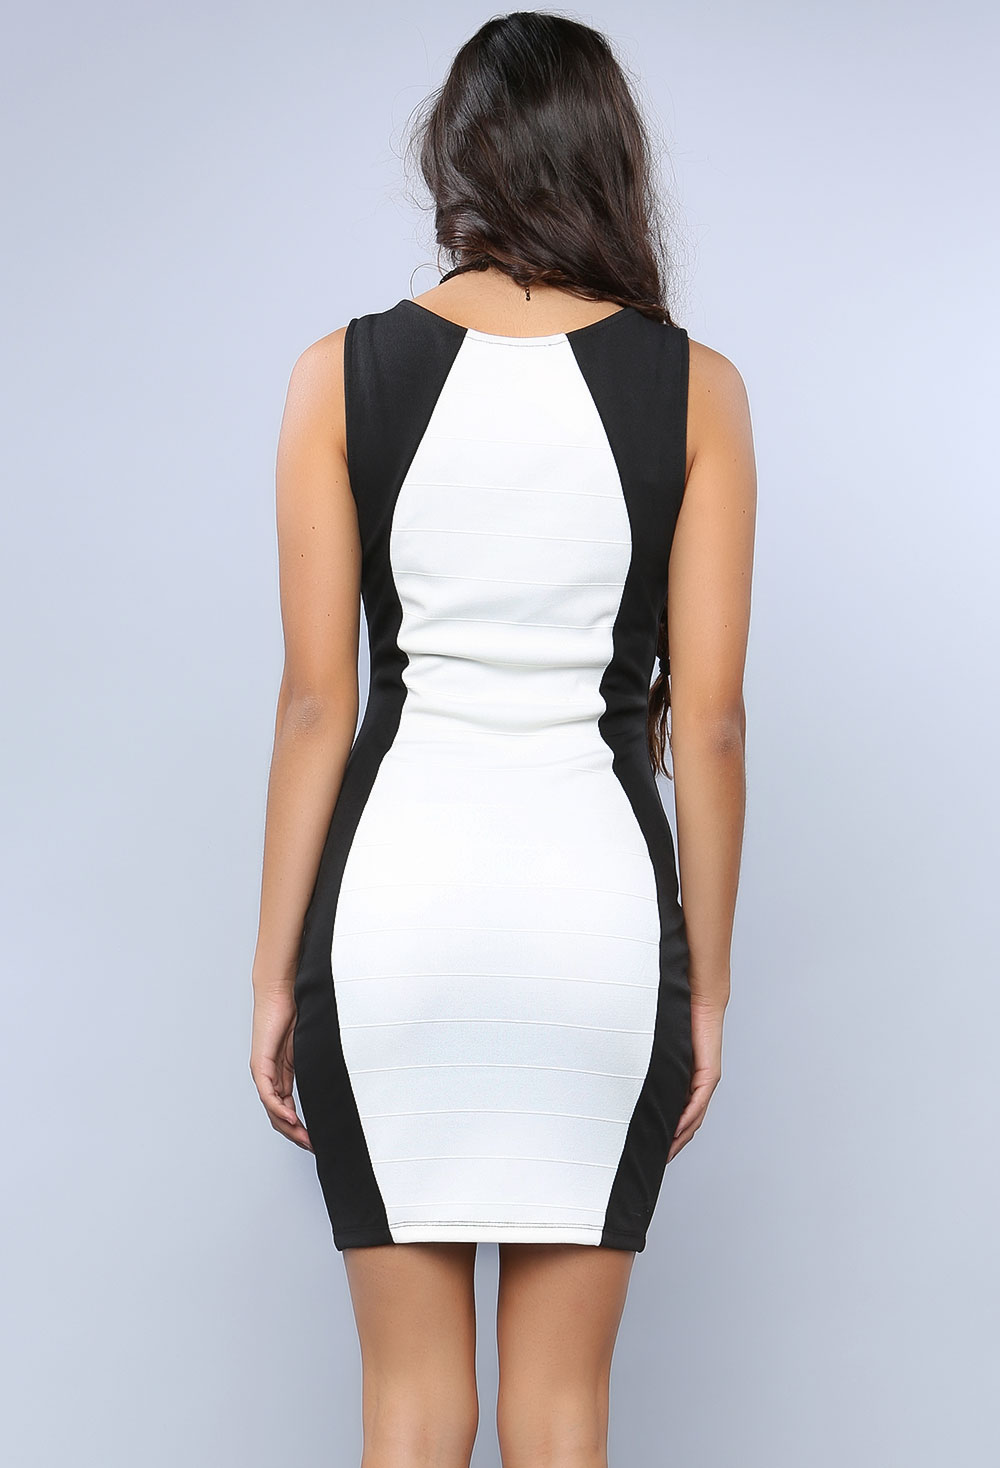 Find the best selection of cheap black and white wedding dresses in bulk here at trueiuptaf.gq Including wedding dresses made pearls and fall victorian wedding dresses at wholesale prices from black and white wedding dresses manufacturers. Source discount and high quality products in hundreds of categories wholesale direct from China.